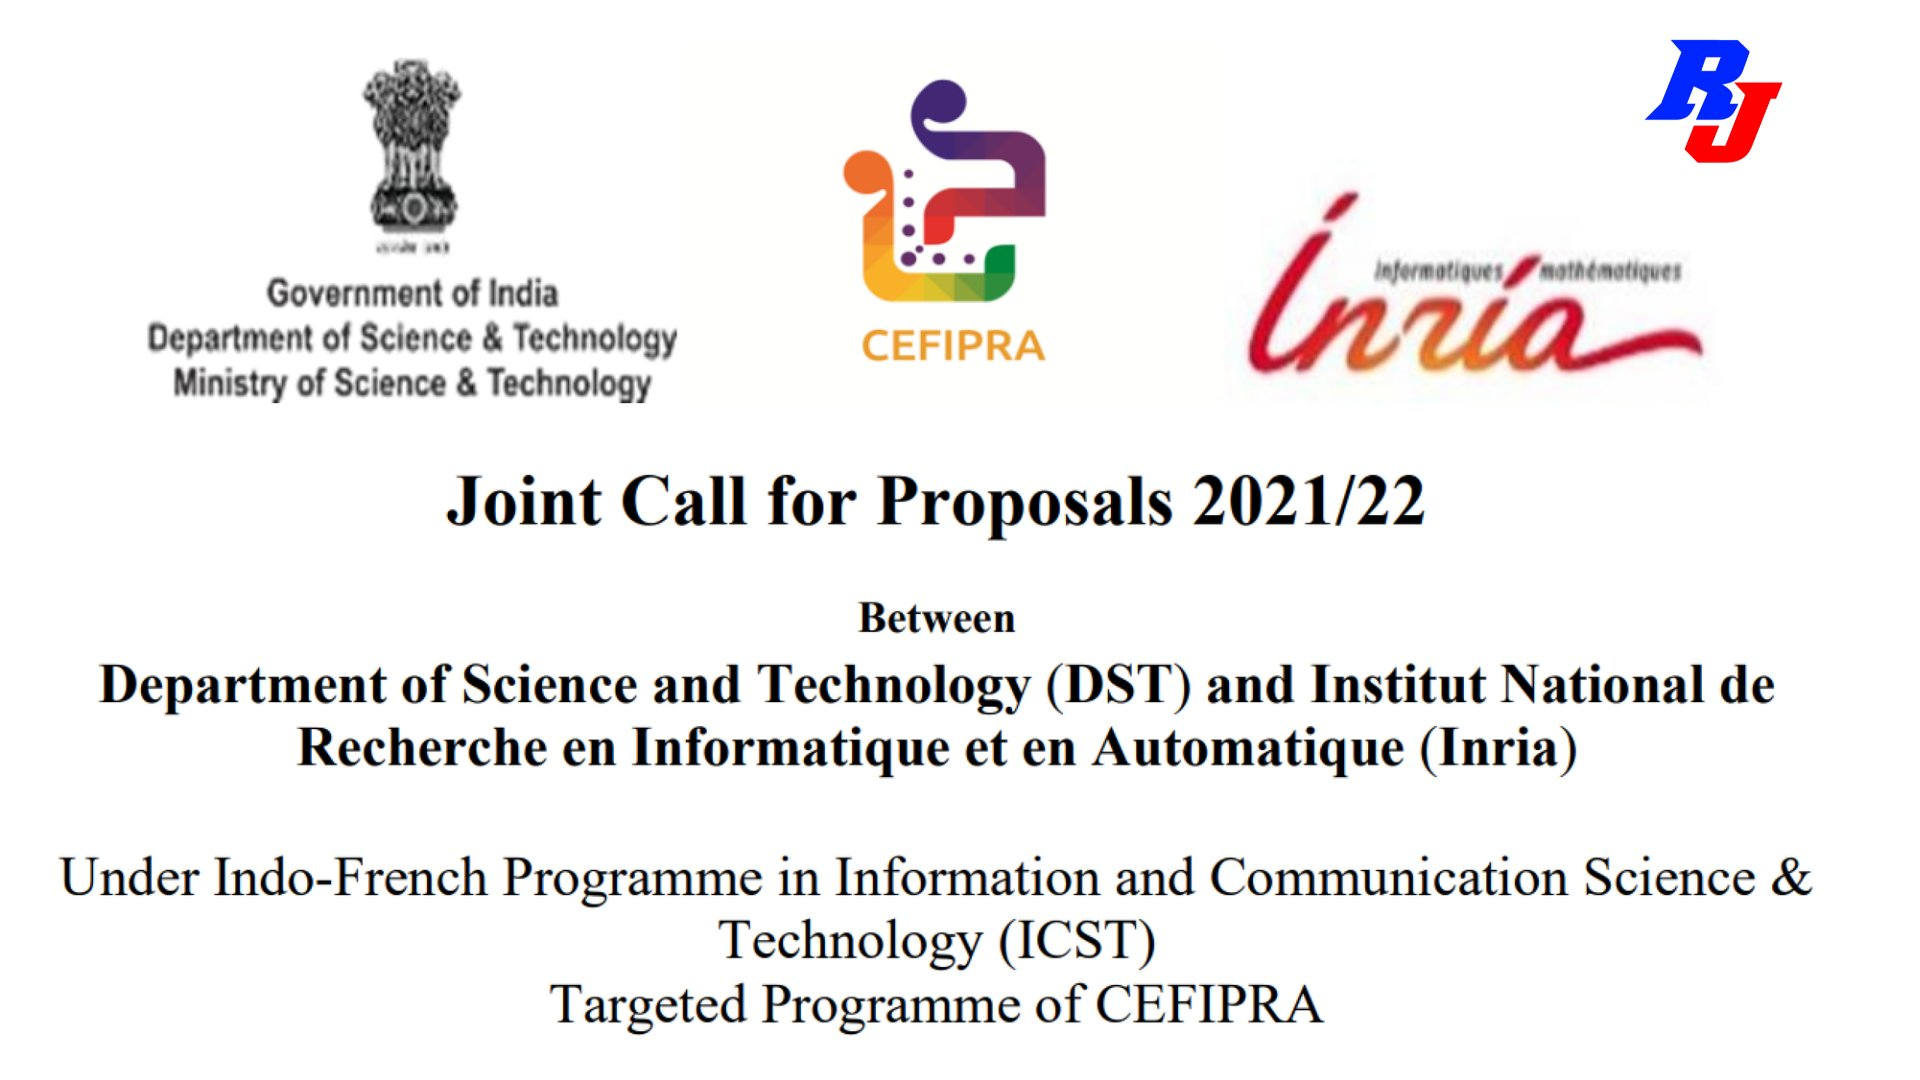 Joint Call for Proposals 2021/22  Under Indo-French Programme